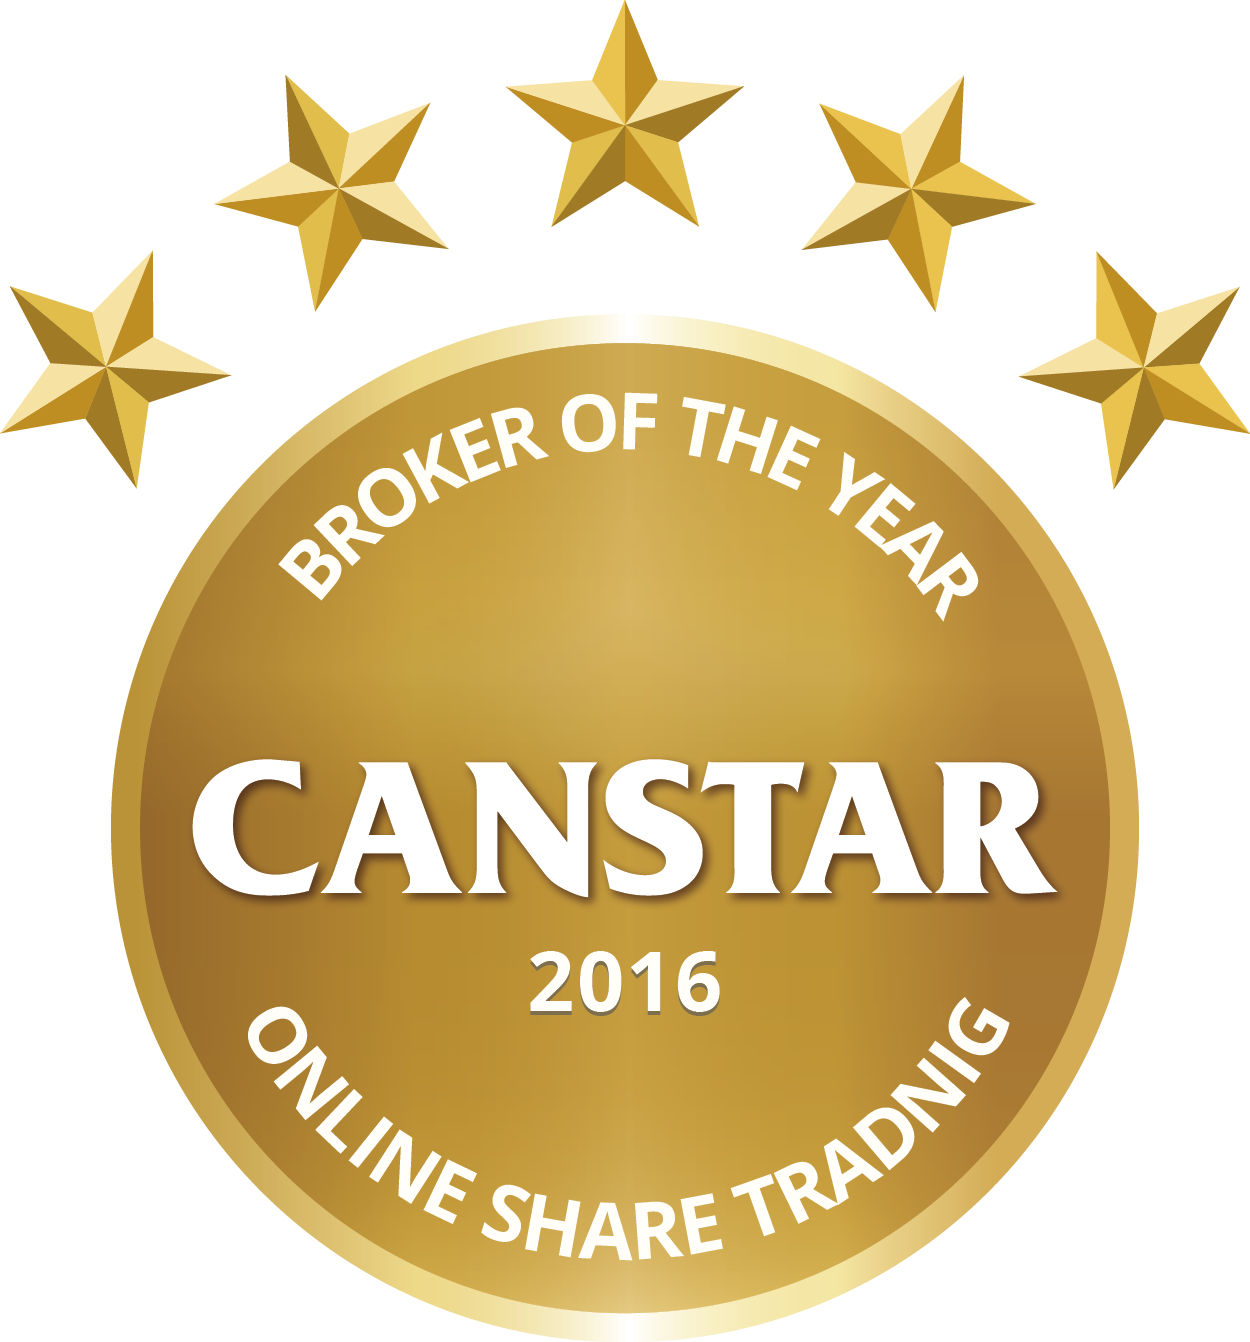 CANSTAR 2016 -Broker of the Year-Online Share Trading